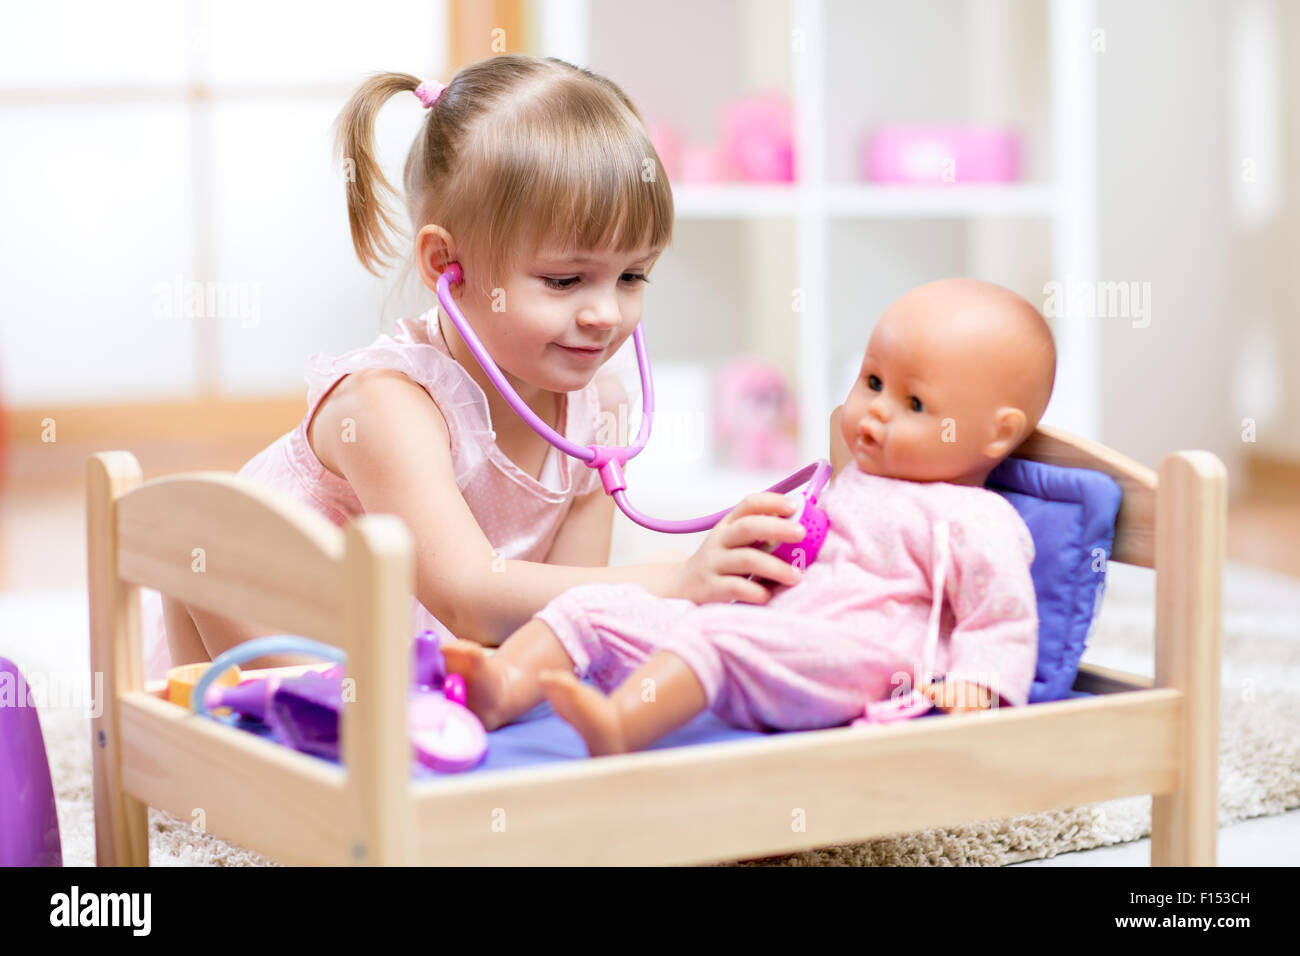 kid playing a doctor with doll - Stock Image